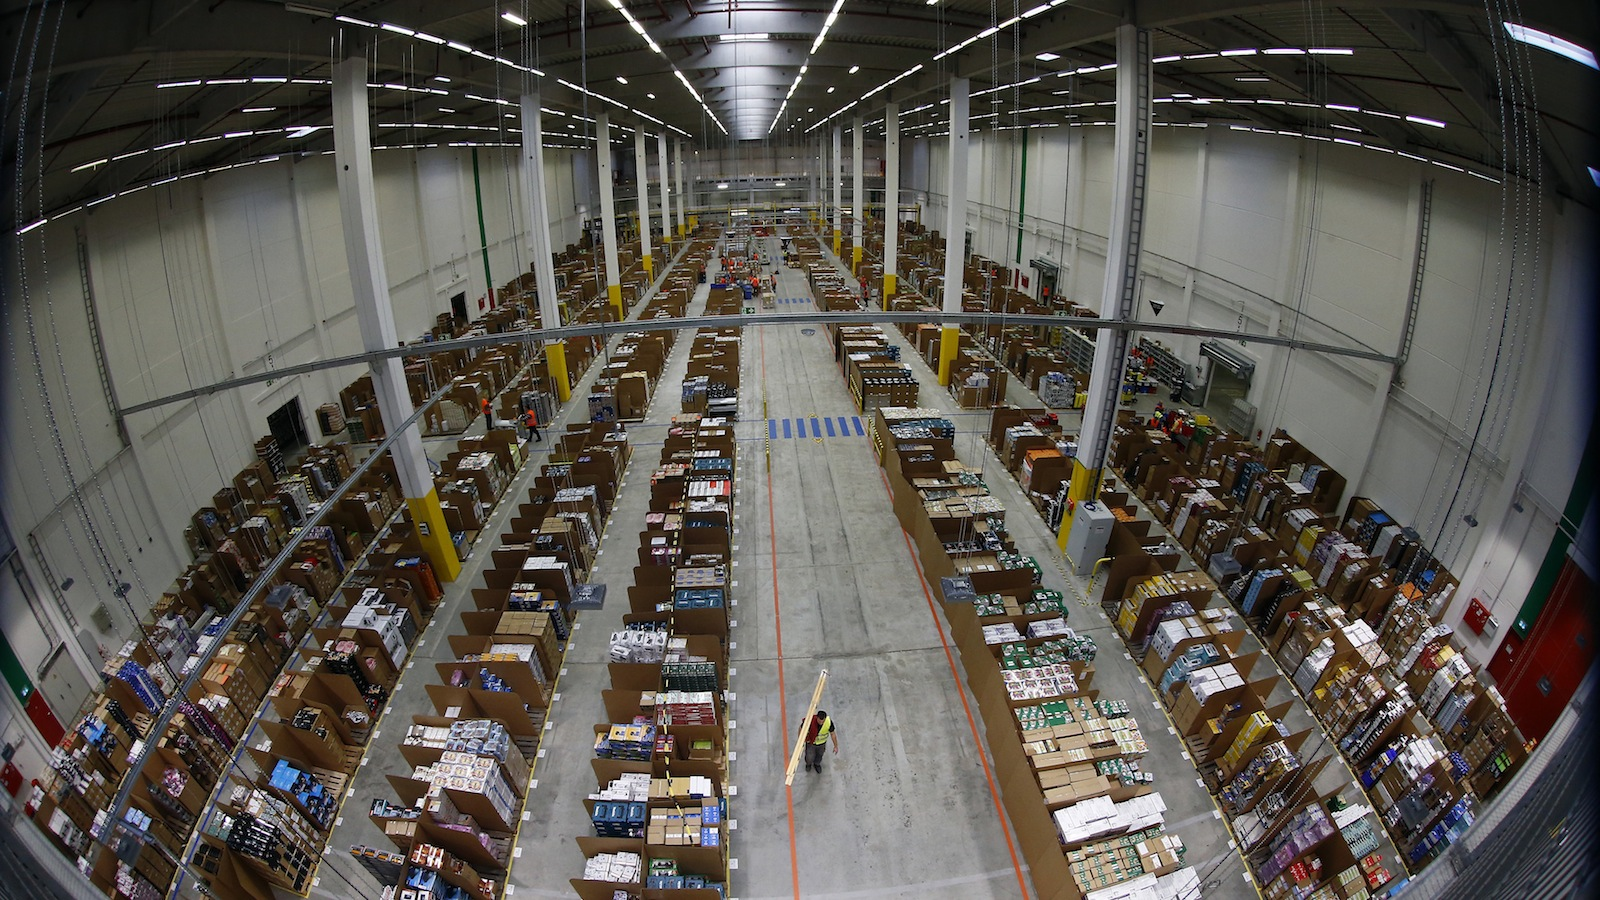 "A general view of the storage hall at the 70,000 square metre warehouse floor in Amazon's new distribution center in Brieselang, near Berlin November 28, 2013. Germany's antitrust watchdog has dropped an investigation into Amazon after the world's biggest Internet retailer agreed to stop forcing third-party merchants to offer their cheapest price when selling products on its platform. Andreas Mundt, the president of the German cartel office, said it had decided to set aside the case against Amazon after the company agreed to cancel that demand from the terms and conditions of its contracts with merchants. ""Making pricing demands to your own competitors cannot be justified in any circumstances, not even with the undeniable advantages of an online market place."" REUTERS/Tobias Schwarz"